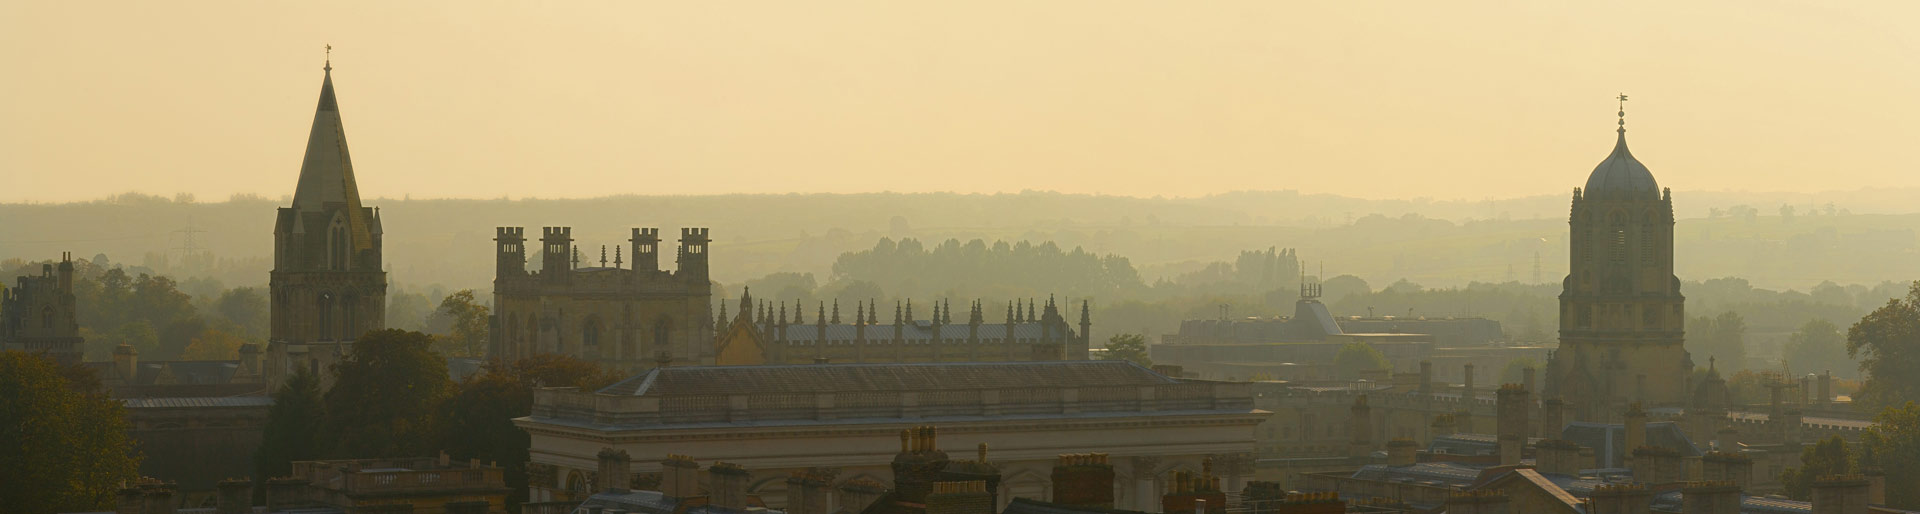 Oxford_Skyline_Panorama_from_St_Mary's_Church_-_Oct_2006